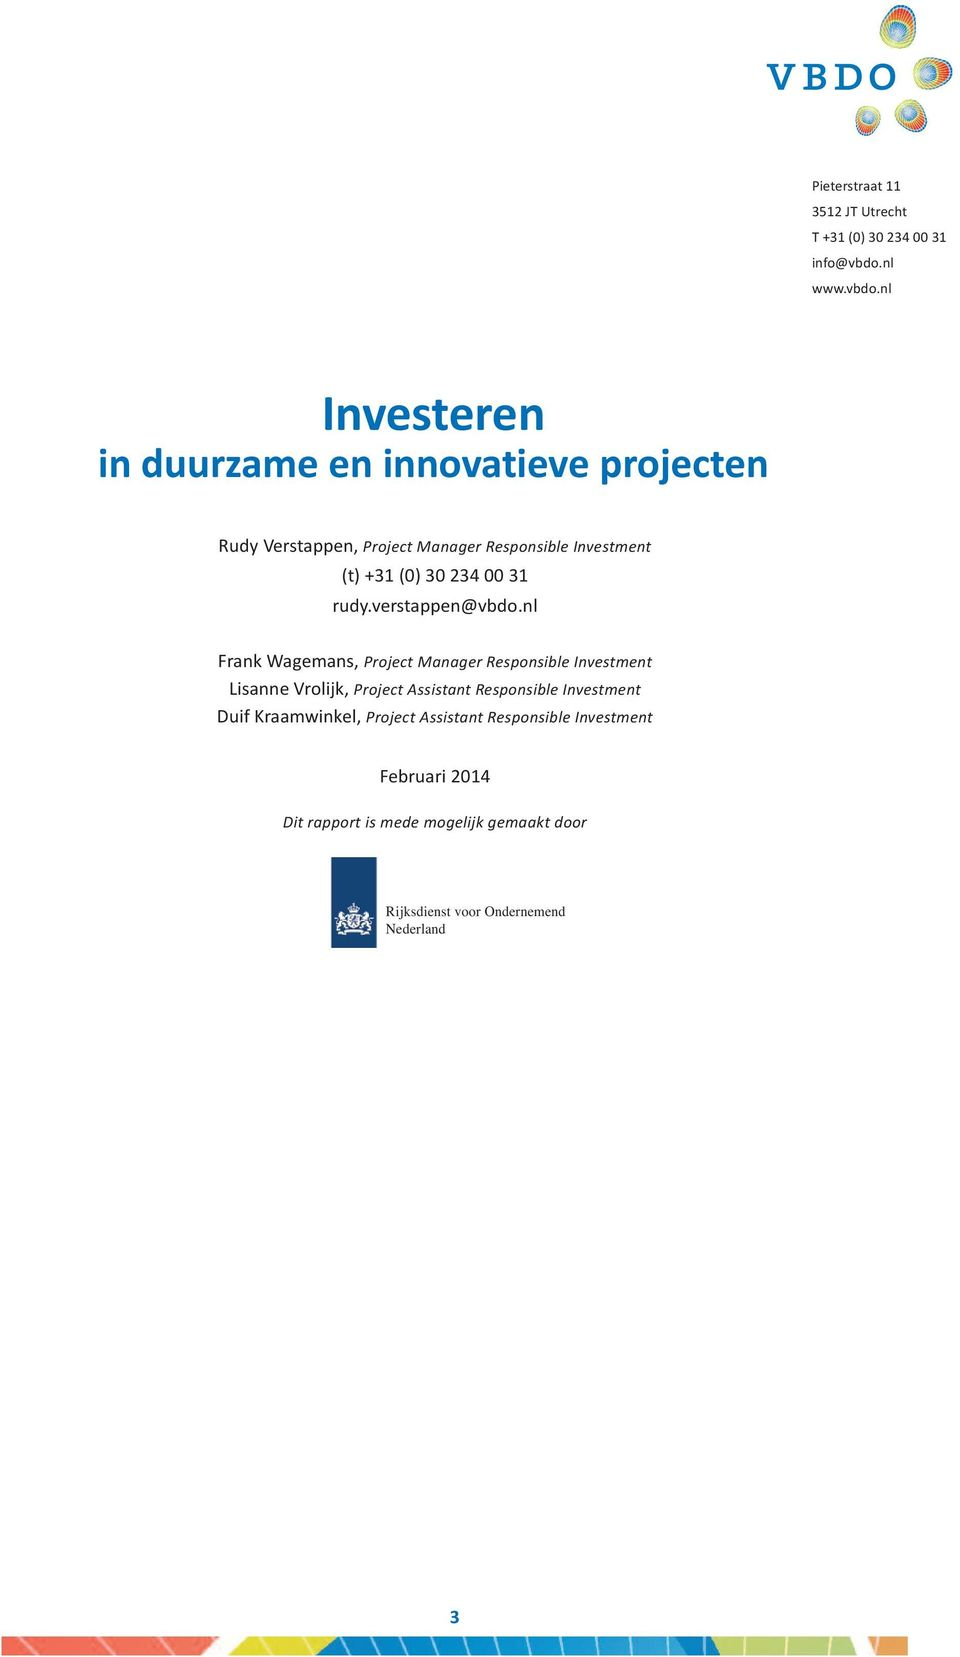 nl Investeren in duurzame en innovatieve projecten rudy Verstappen, Project Manager Responsible Investment (t) +31 (0) 30 234